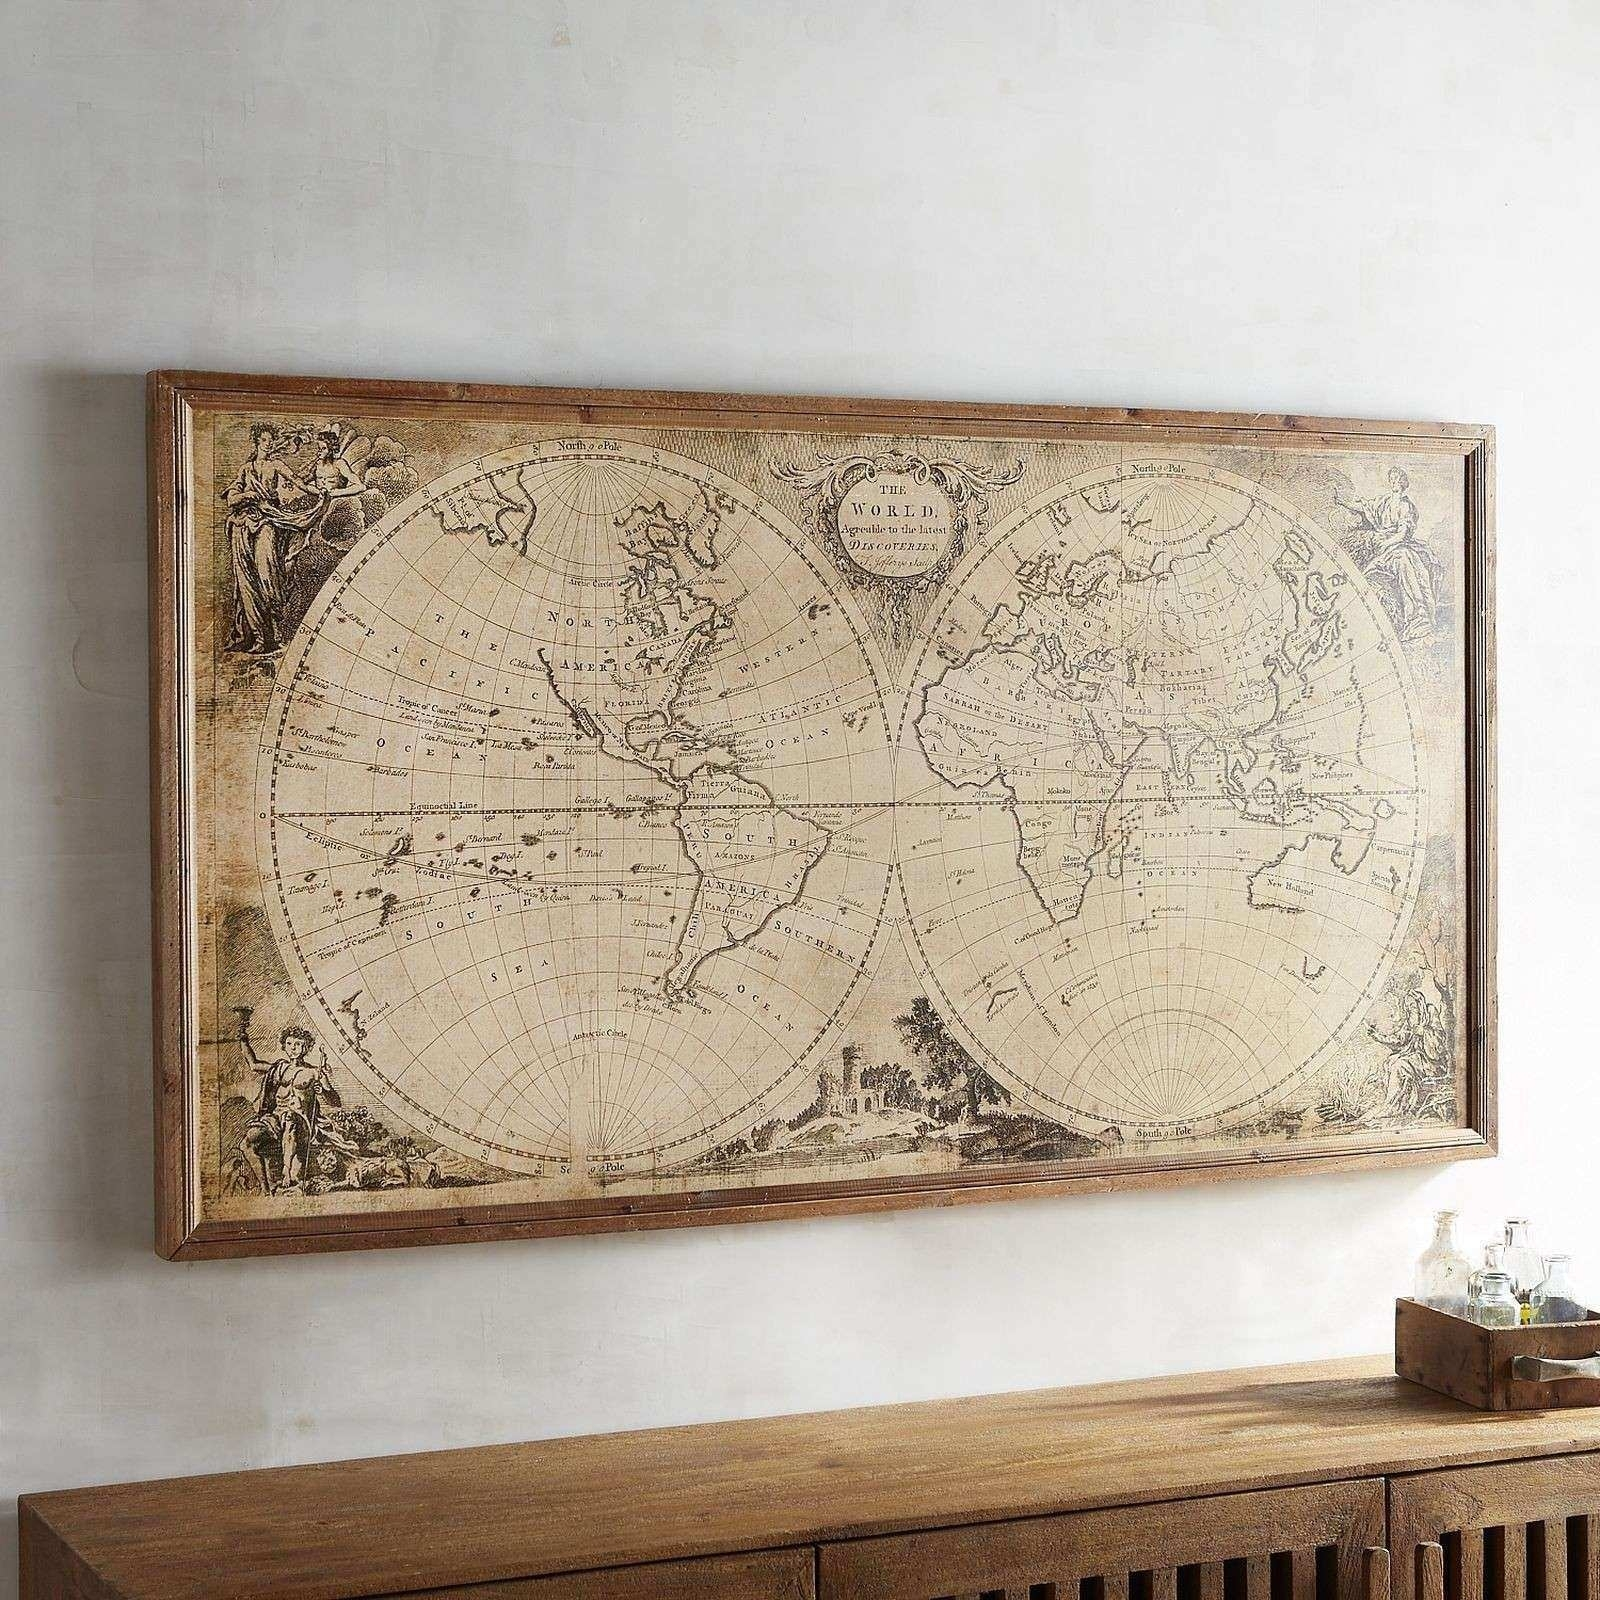 Map Wall Decor Inspirational World Map Wall Decor Roundtripticket throughout World Map For Wall Art (Image 7 of 20)